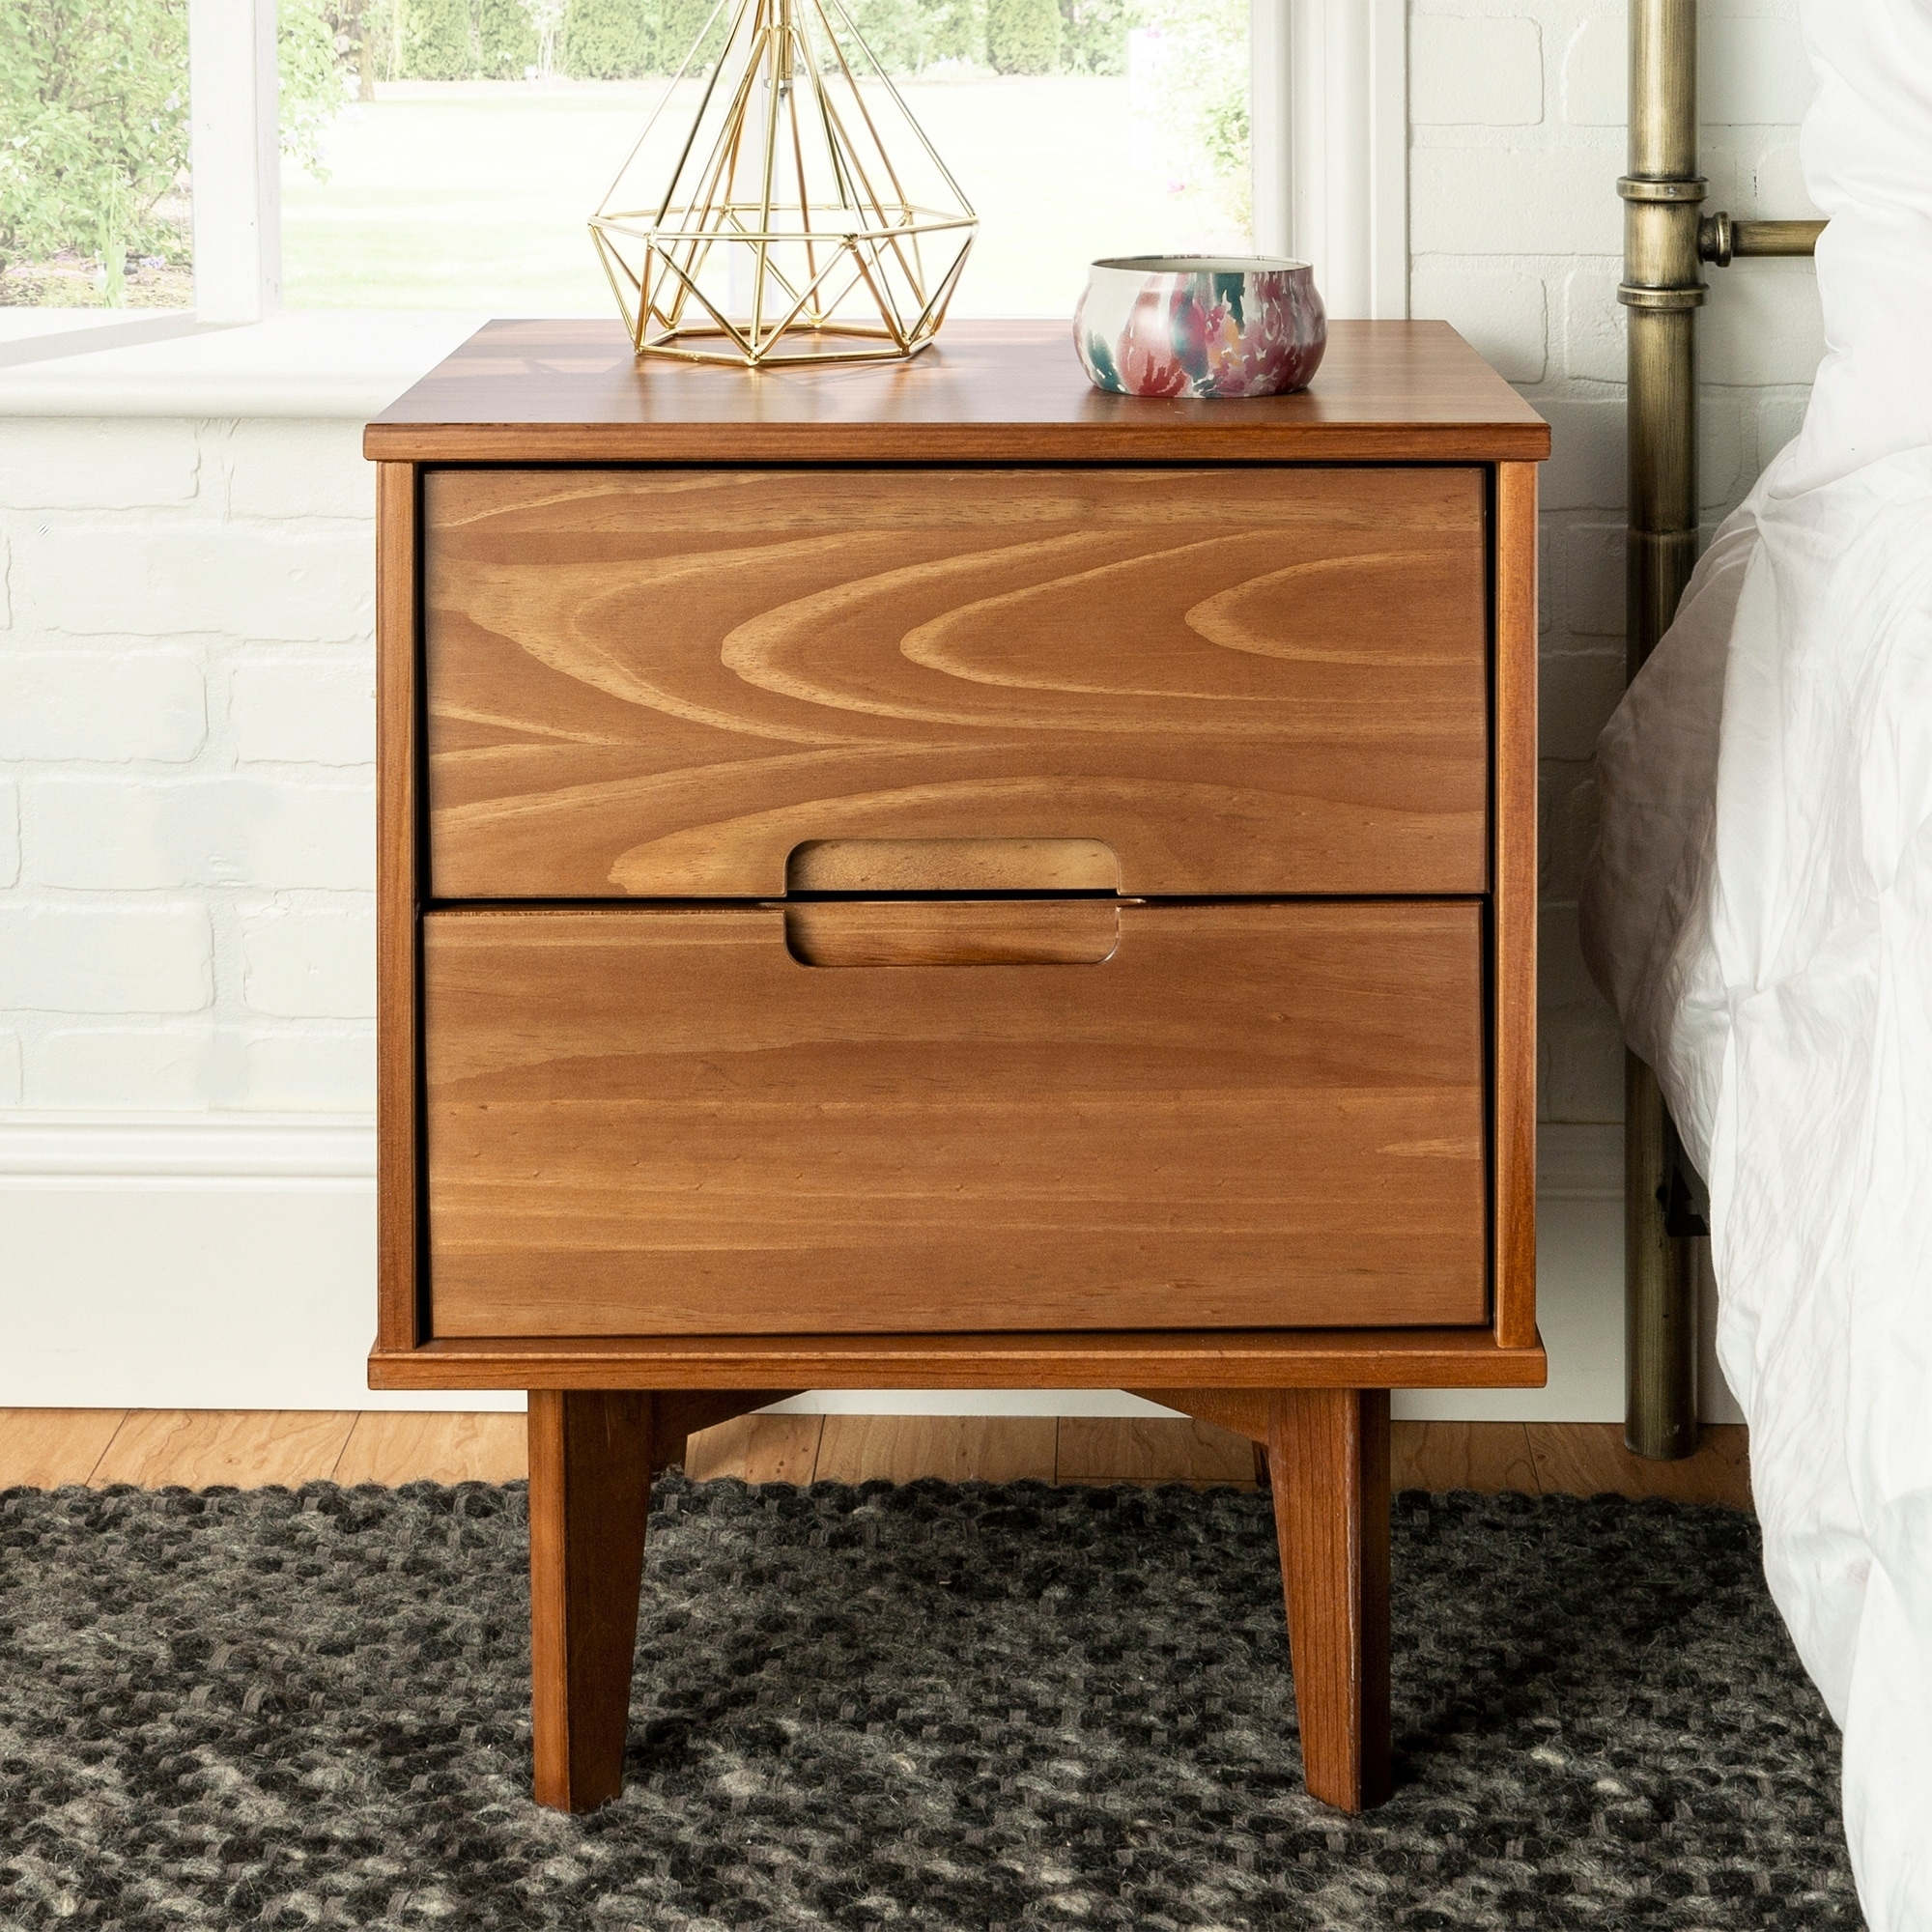 Carson Carrington 20 Inch Longyearbyen Mid Century Modern Nightstand Brown 2 Drawer Storage Table